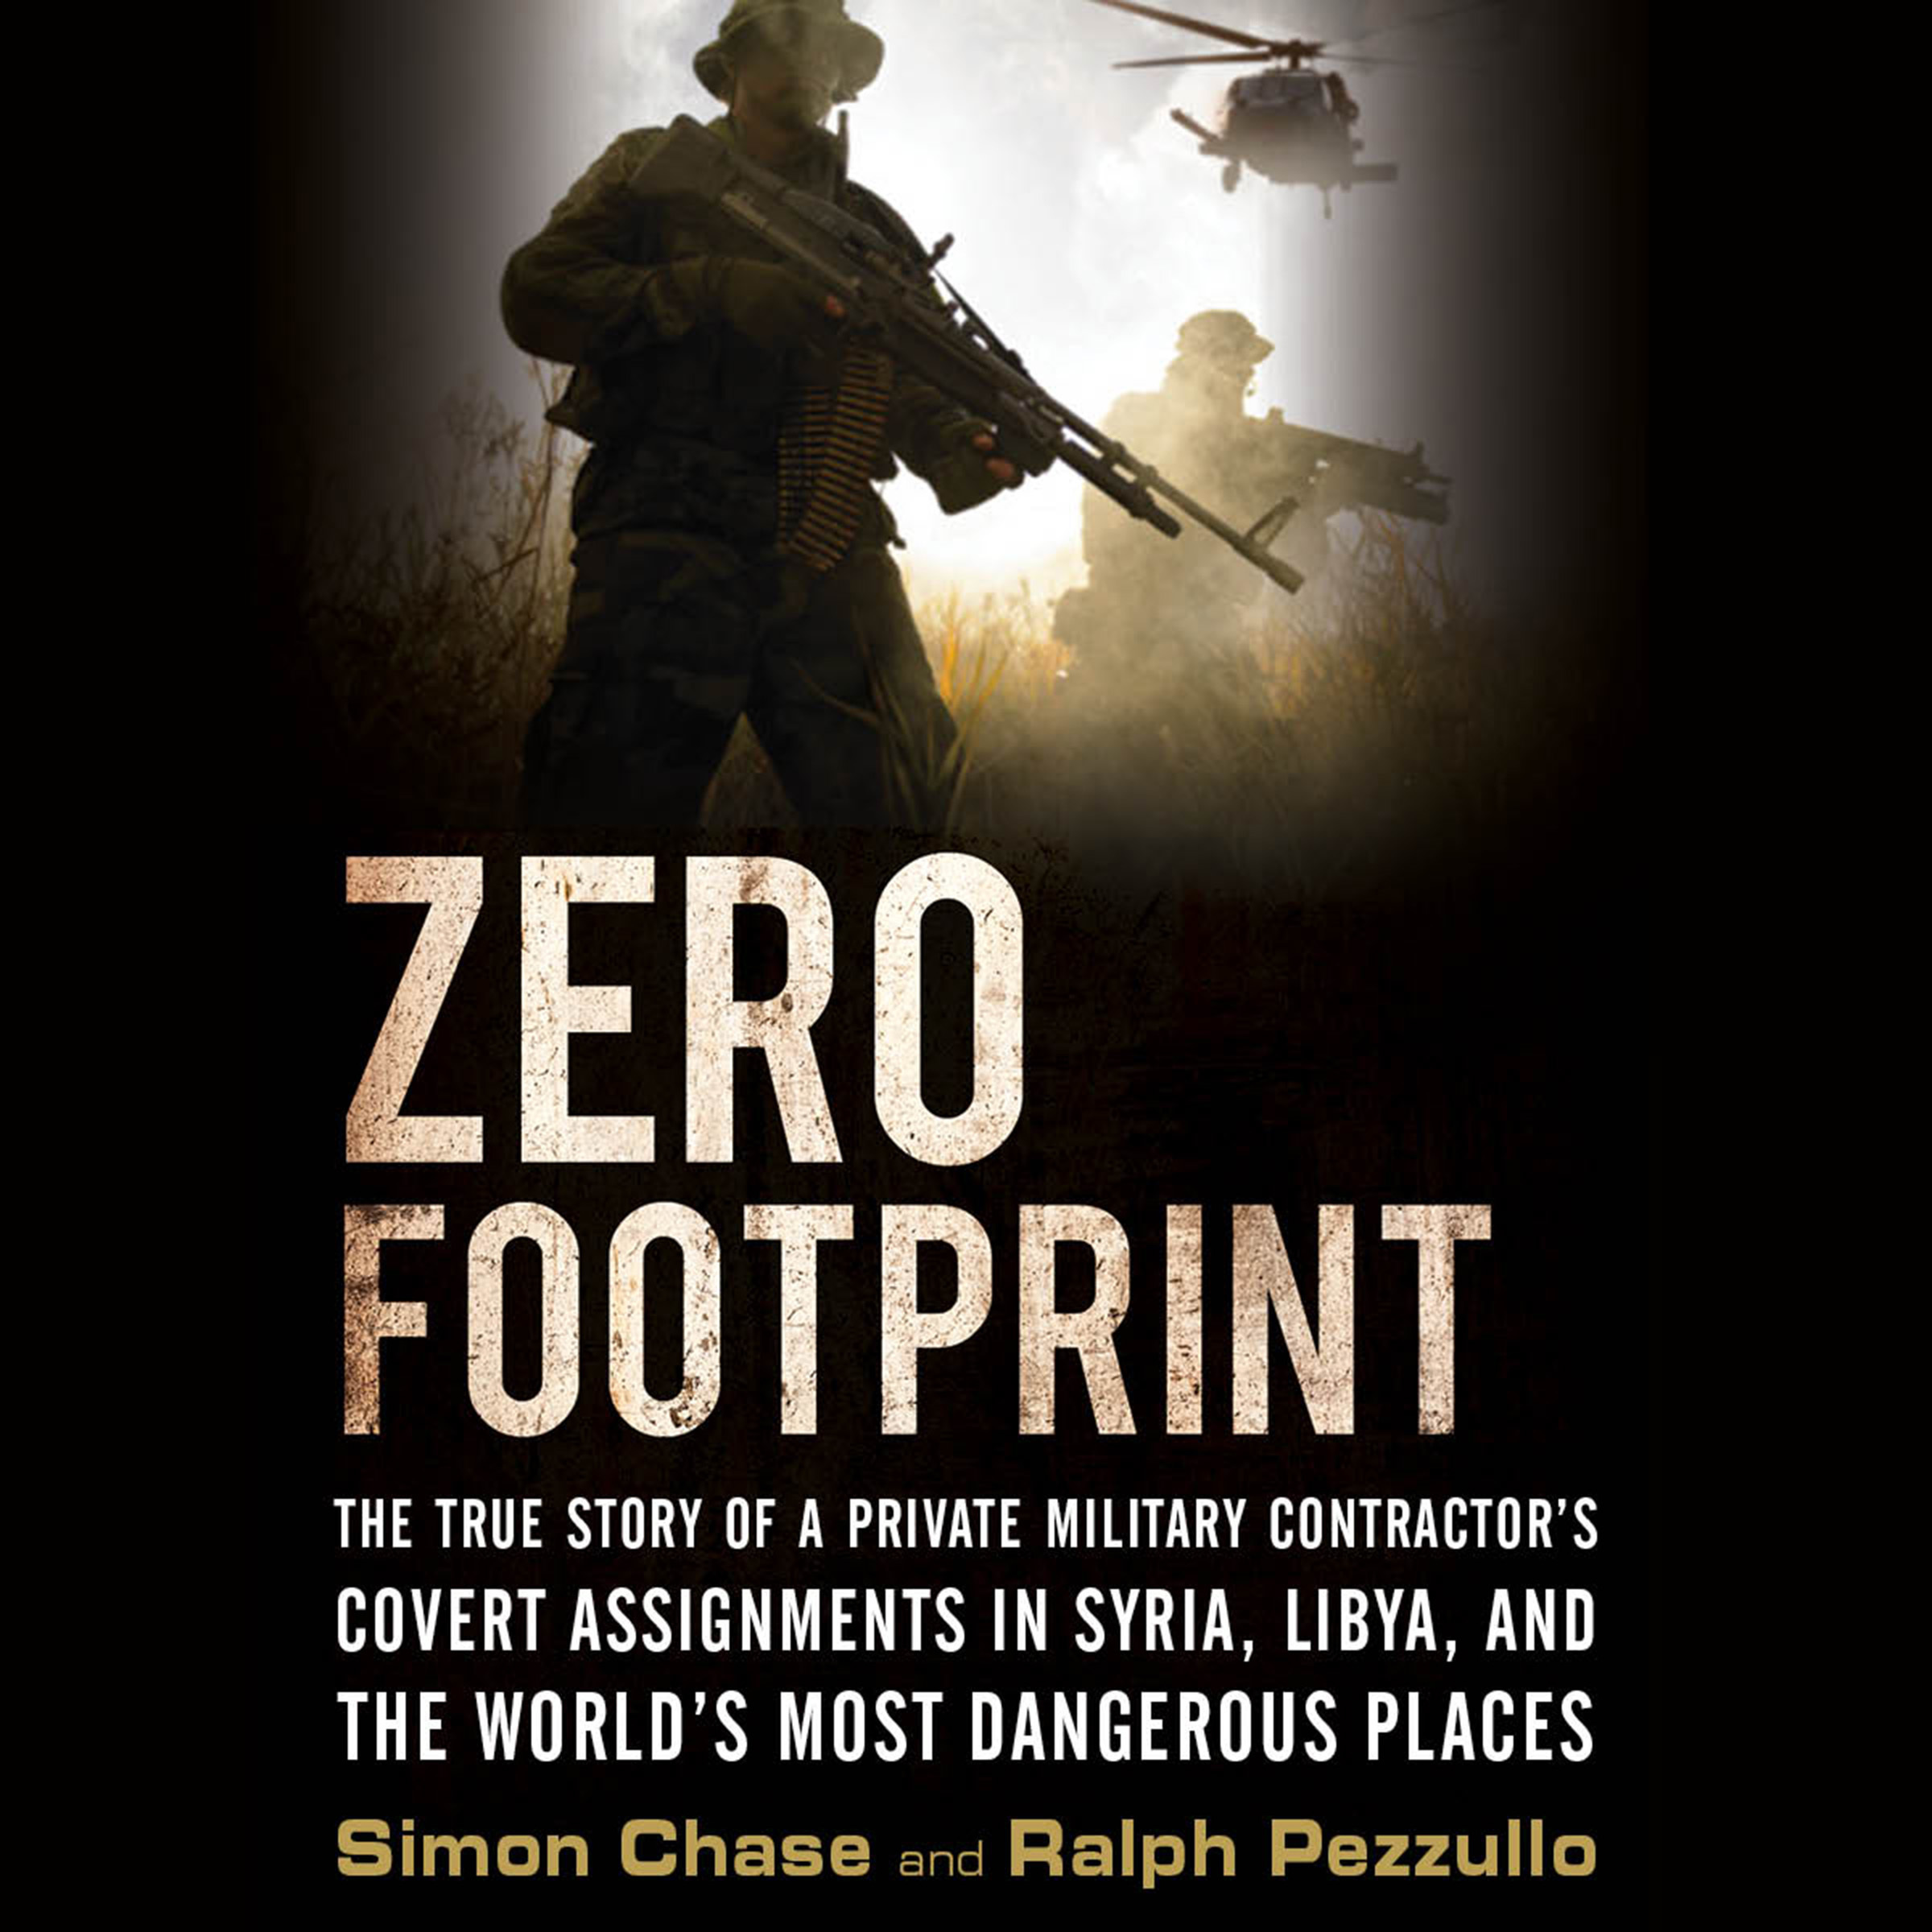 Printable Zero Footprint: The True Story of a Private Military Contractor¿s Covert Assignments in Syria, Libya, And the World¿s Most Dangerous Places Audiobook Cover Art